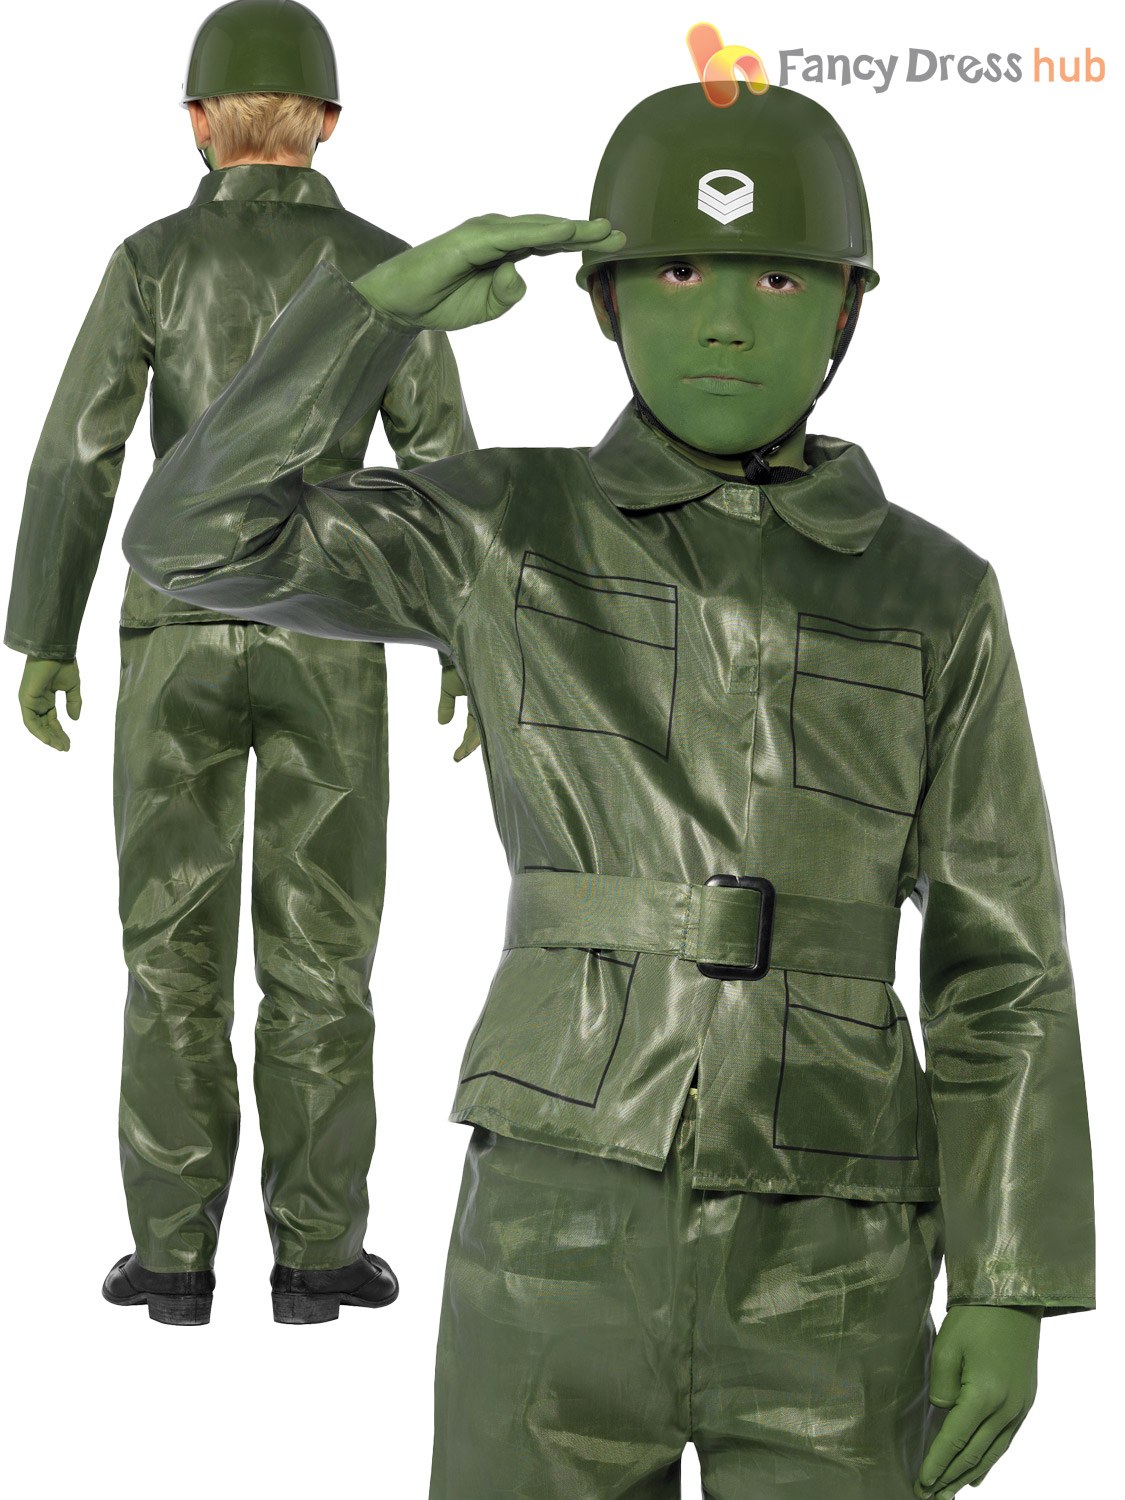 Army Toys For Boys : Boys green army plastic toy soldier kids fancy dress up